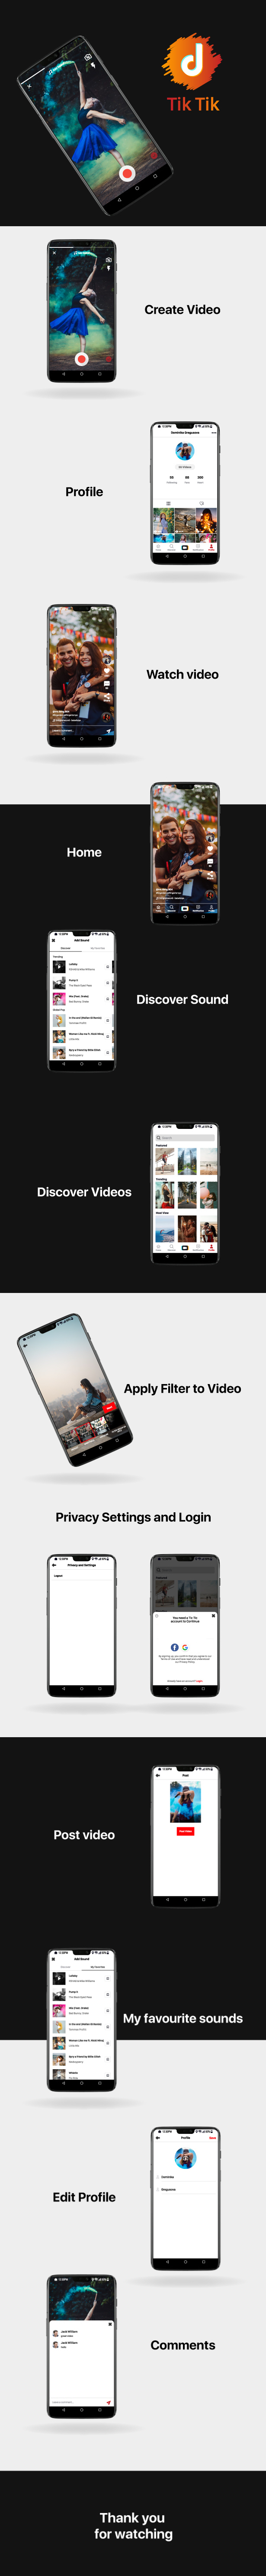 TicTic -  Android media app for creating and sharing short videos - 5